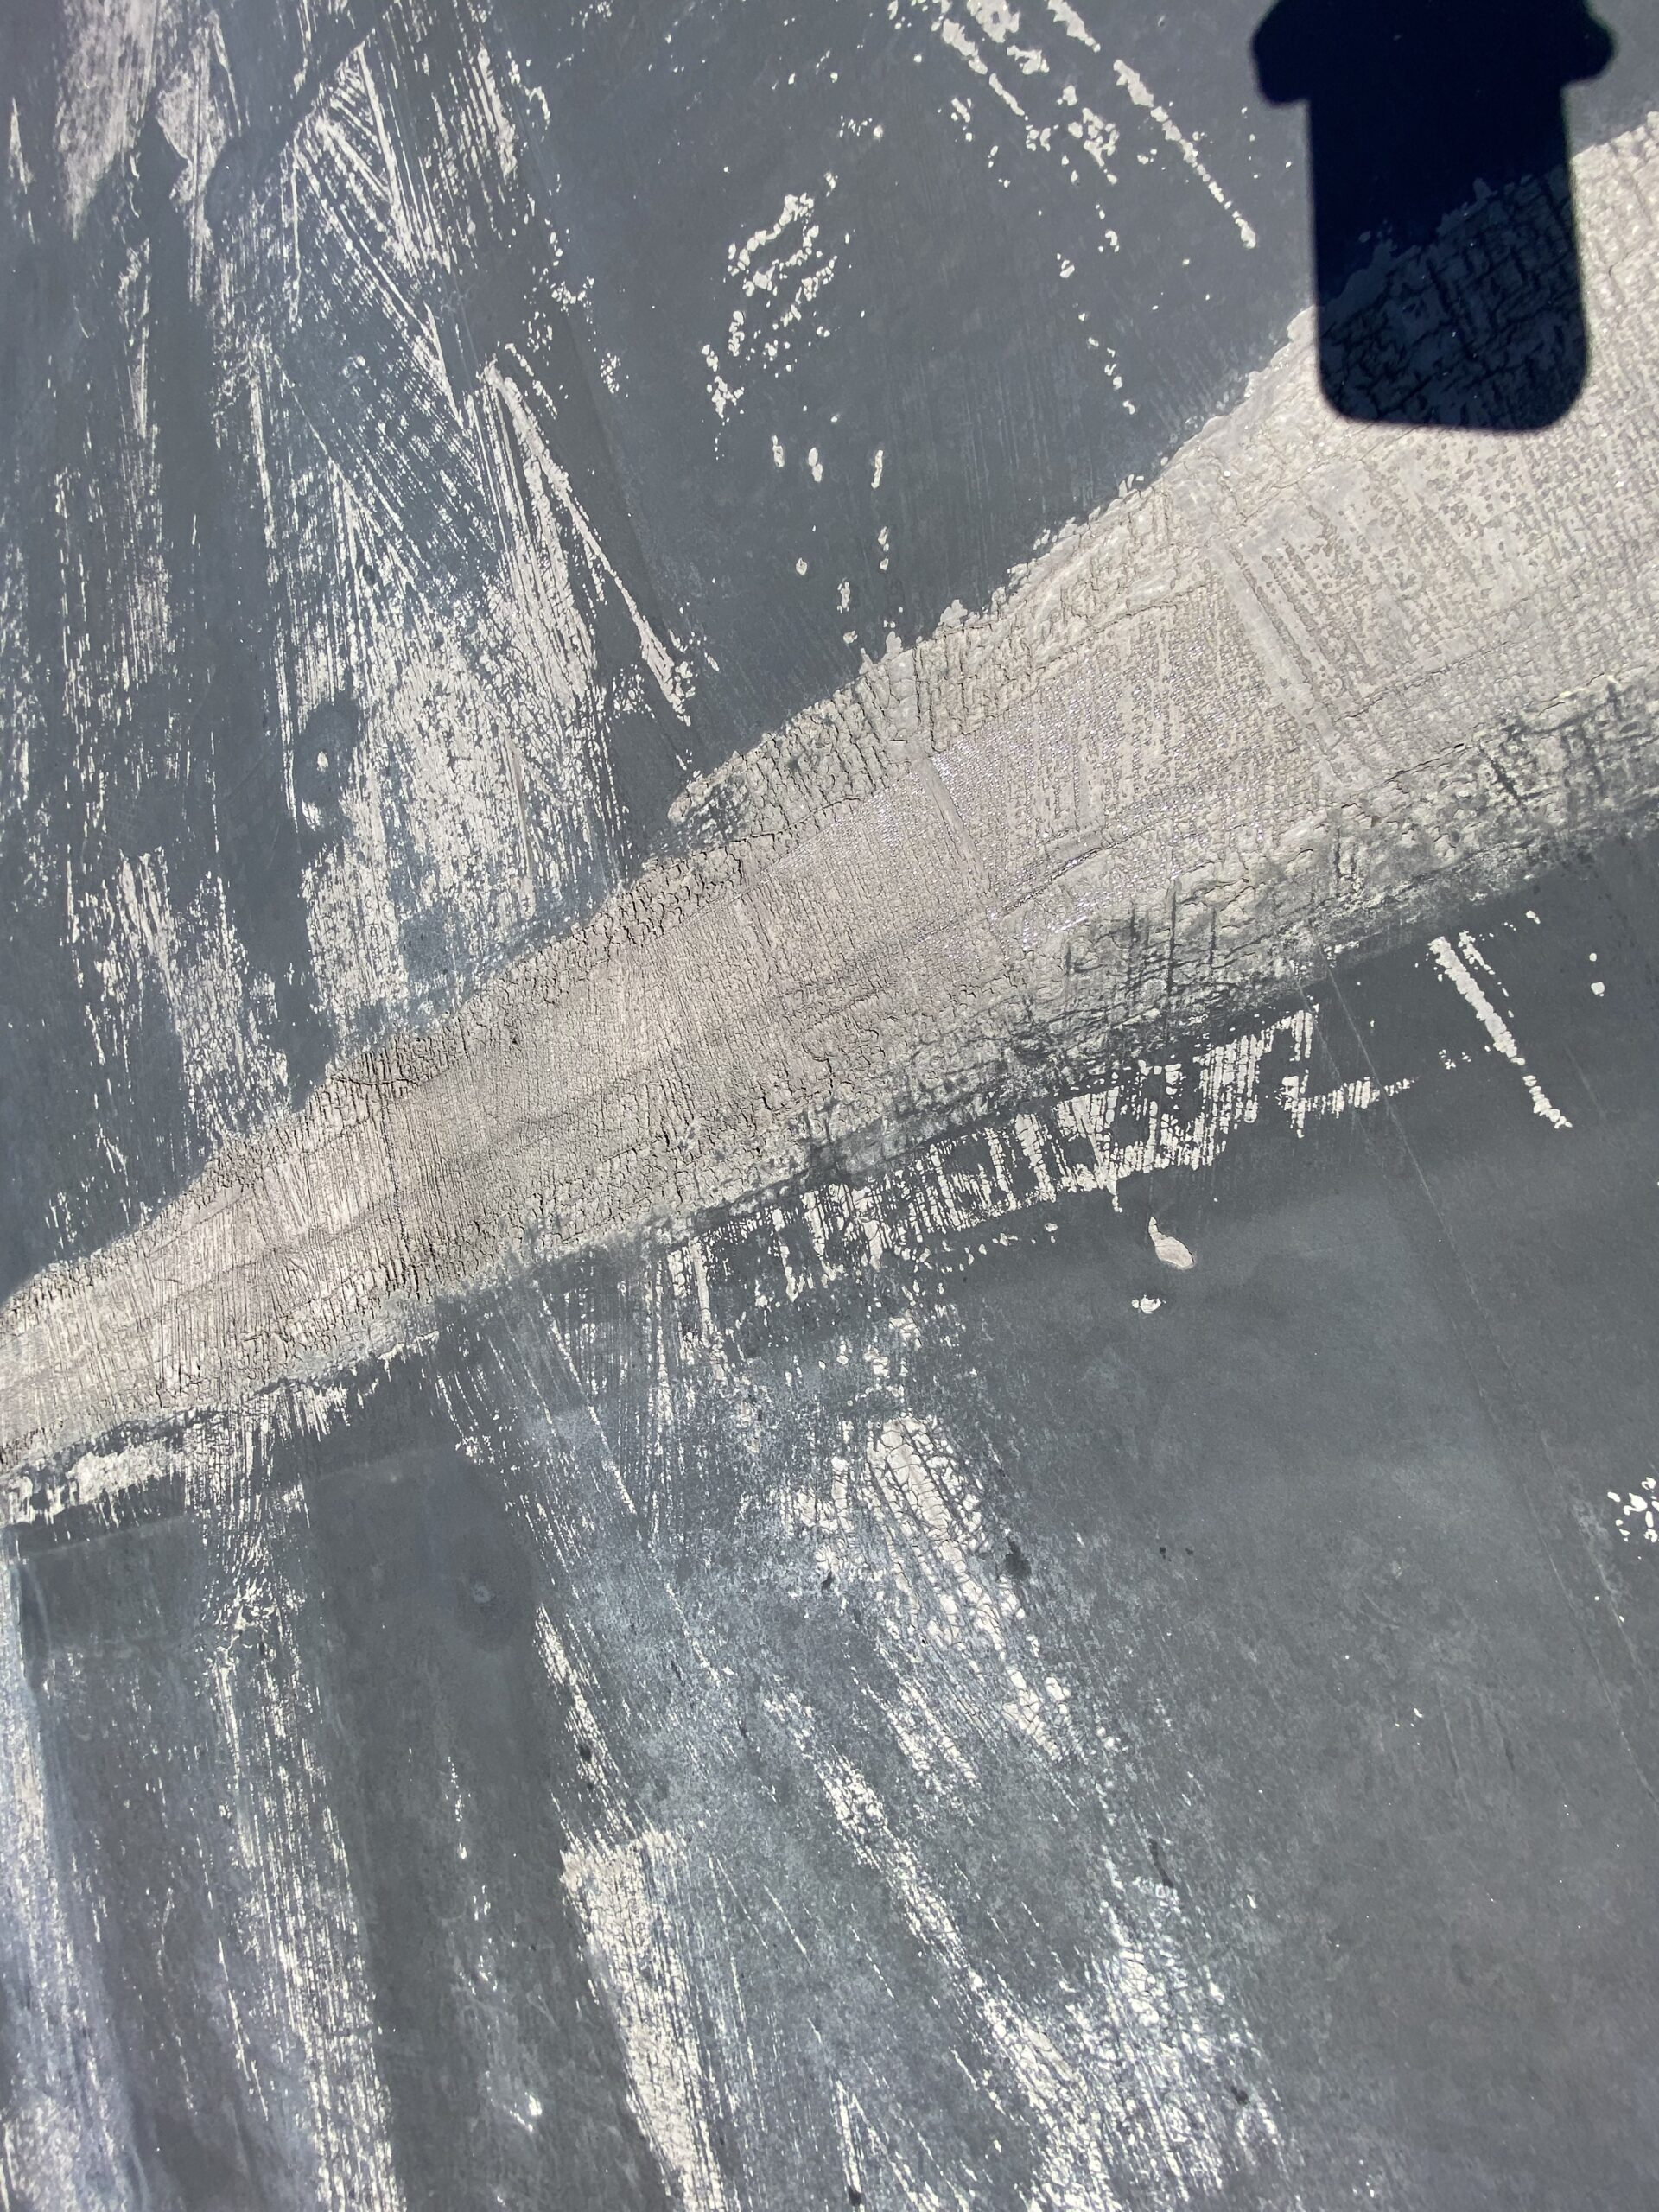 This is a picture of a seam that is cracked on an old black flat roof